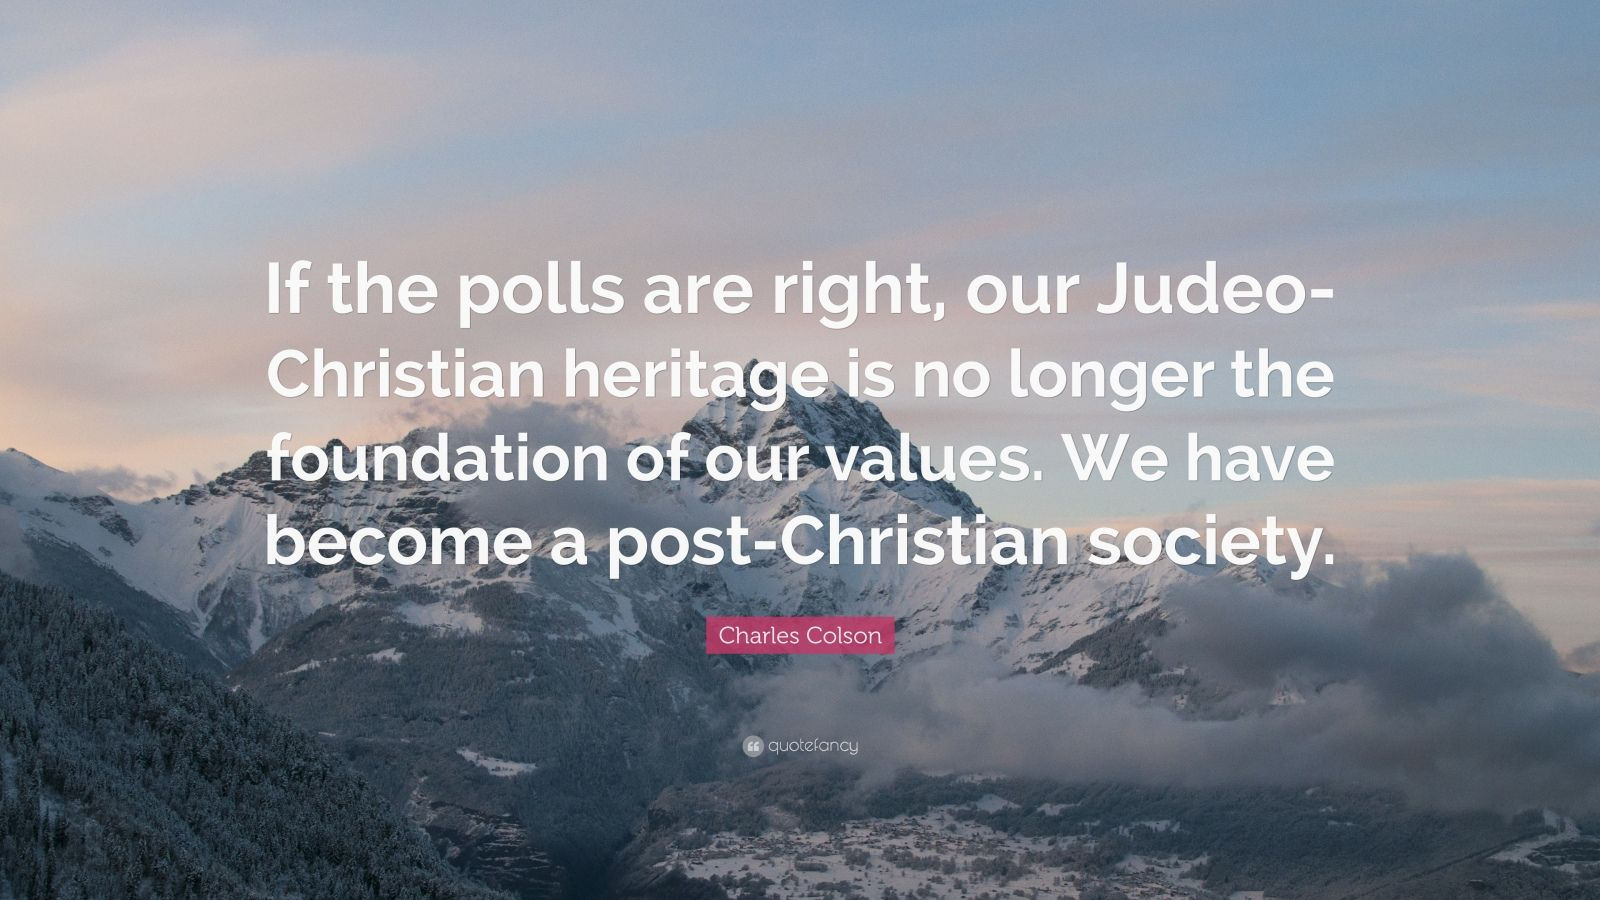 """Charles Colson Quote: """"If the polls are right, our Judeo-Christian heritage is no longer the foundation of our values. We have become a post-Christian society."""""""